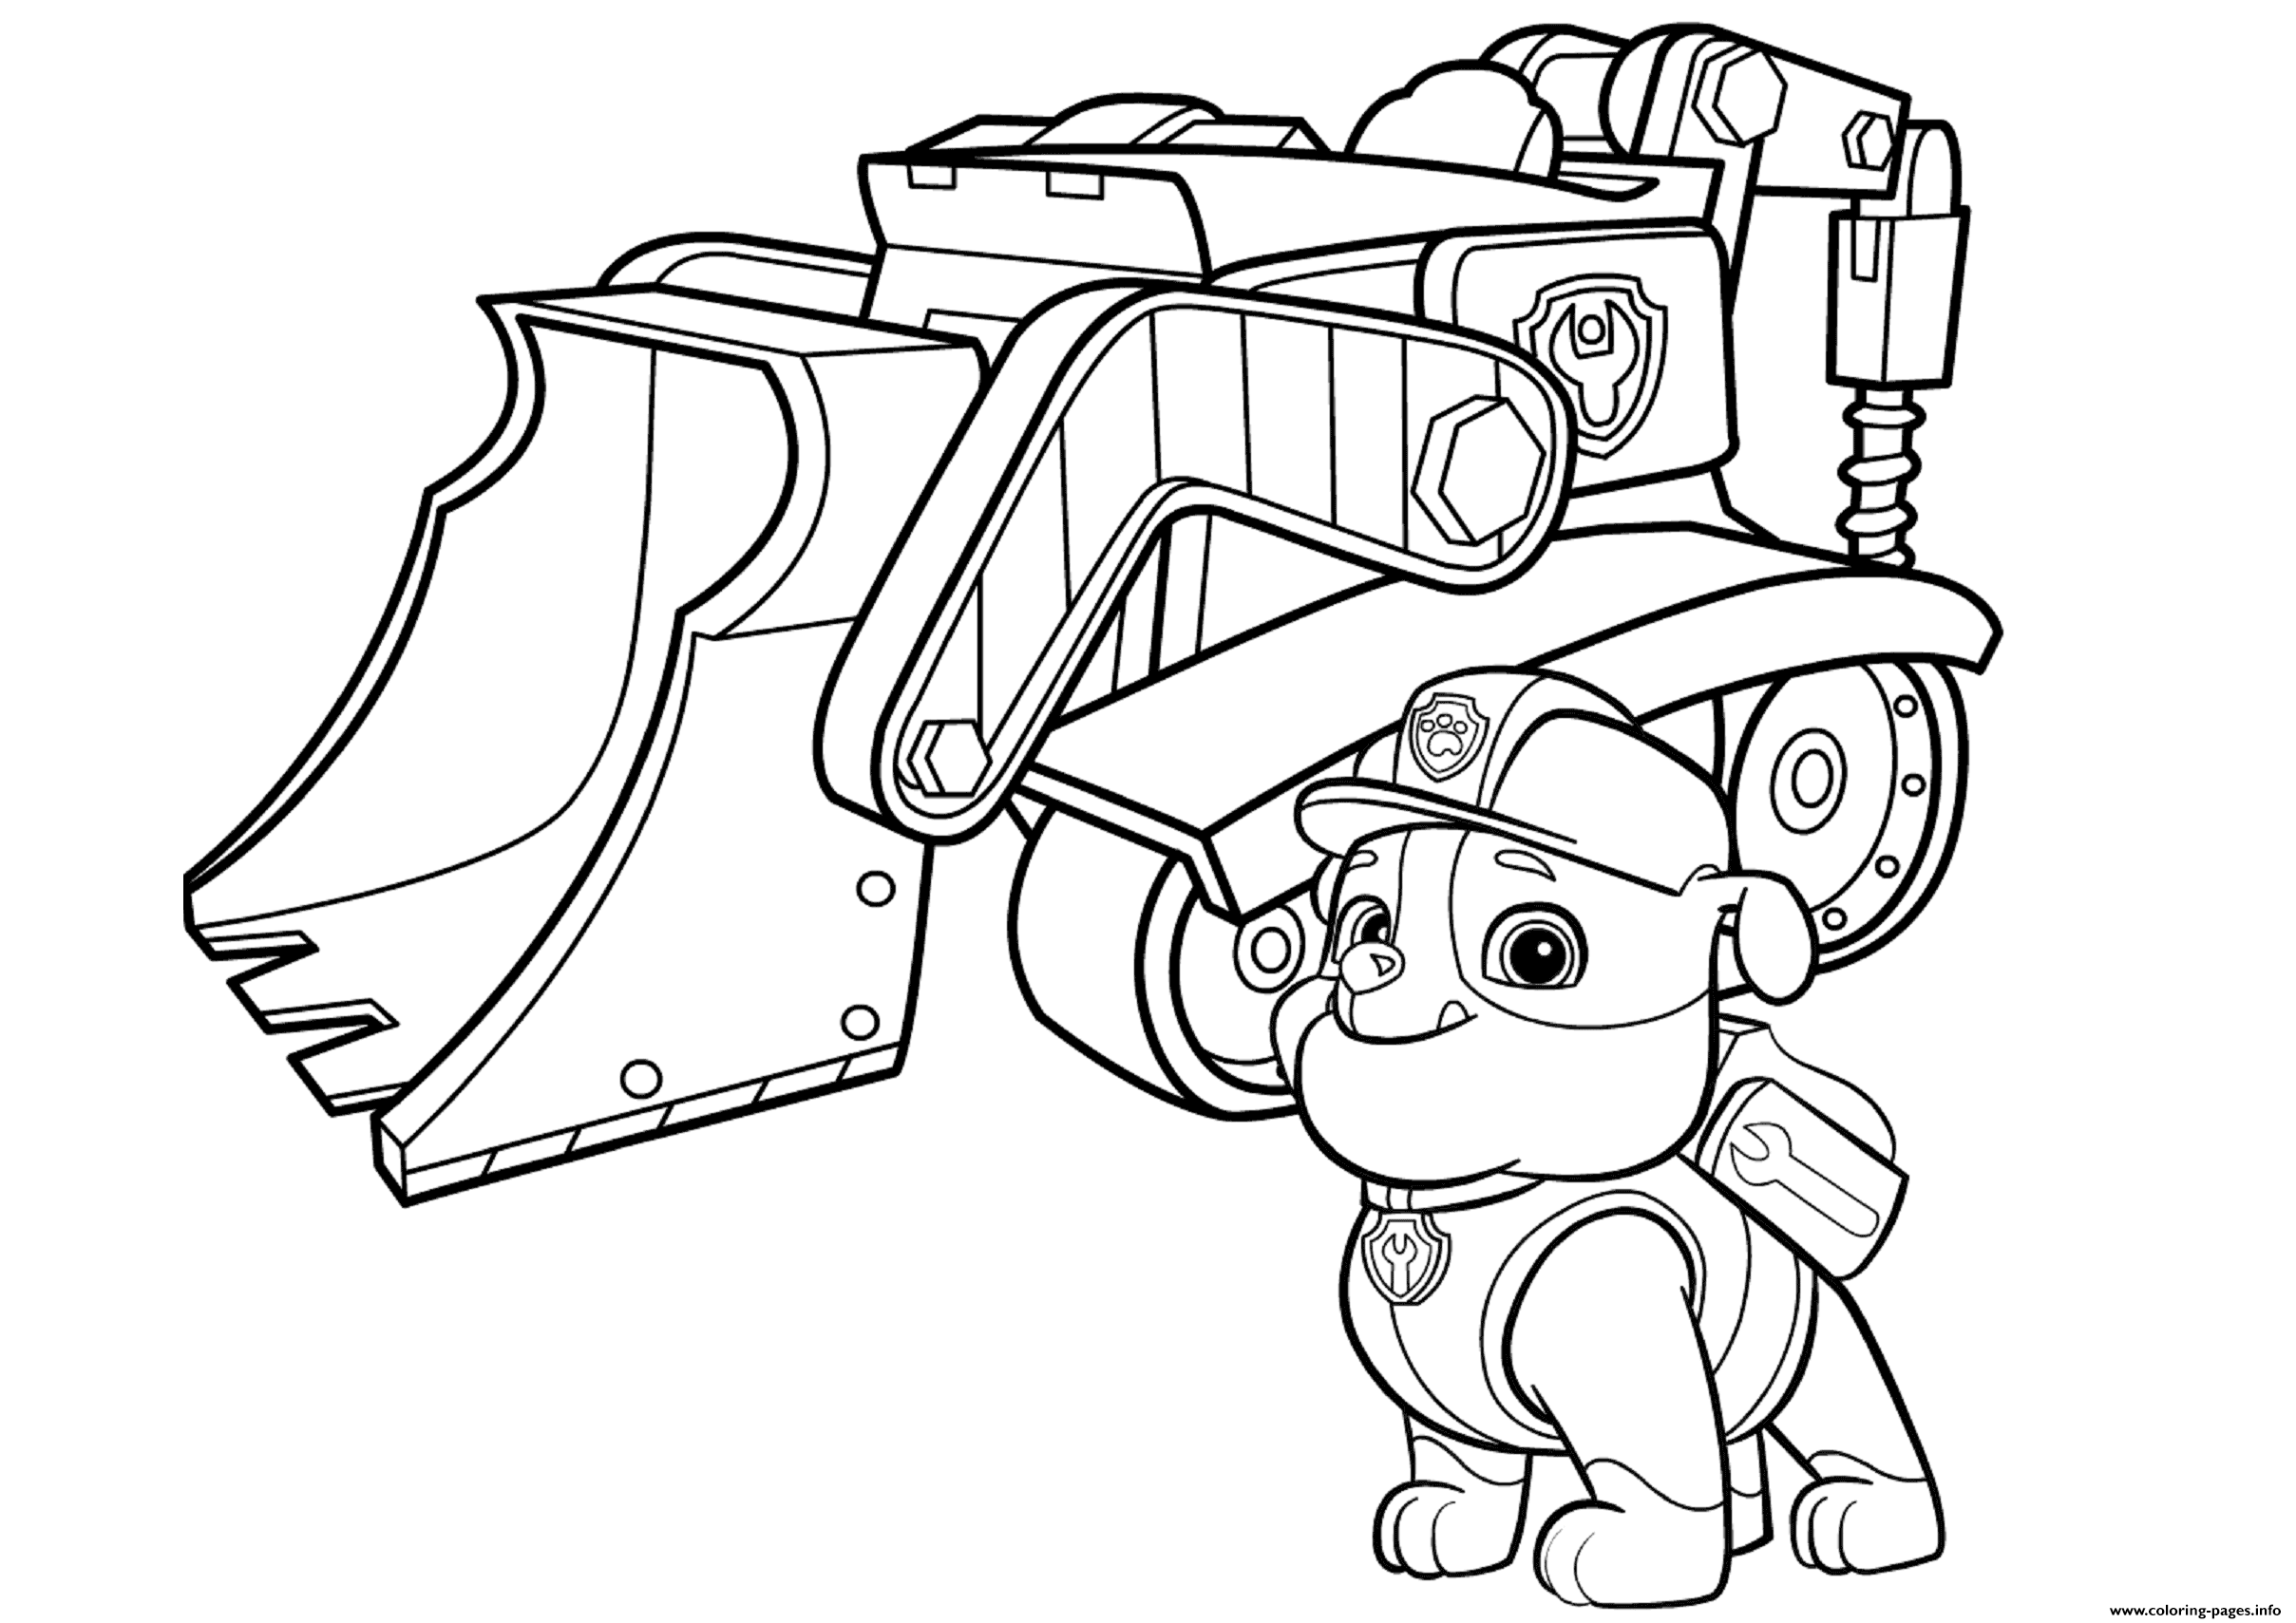 Quatang Gallery- Free Printable Paw Patrol Coloring Pages Are Fun For Kids Of All Ages Love Paw Patrol You Paw Patrol Coloring Pages Paw Patrol Coloring Paw Patrol Printables